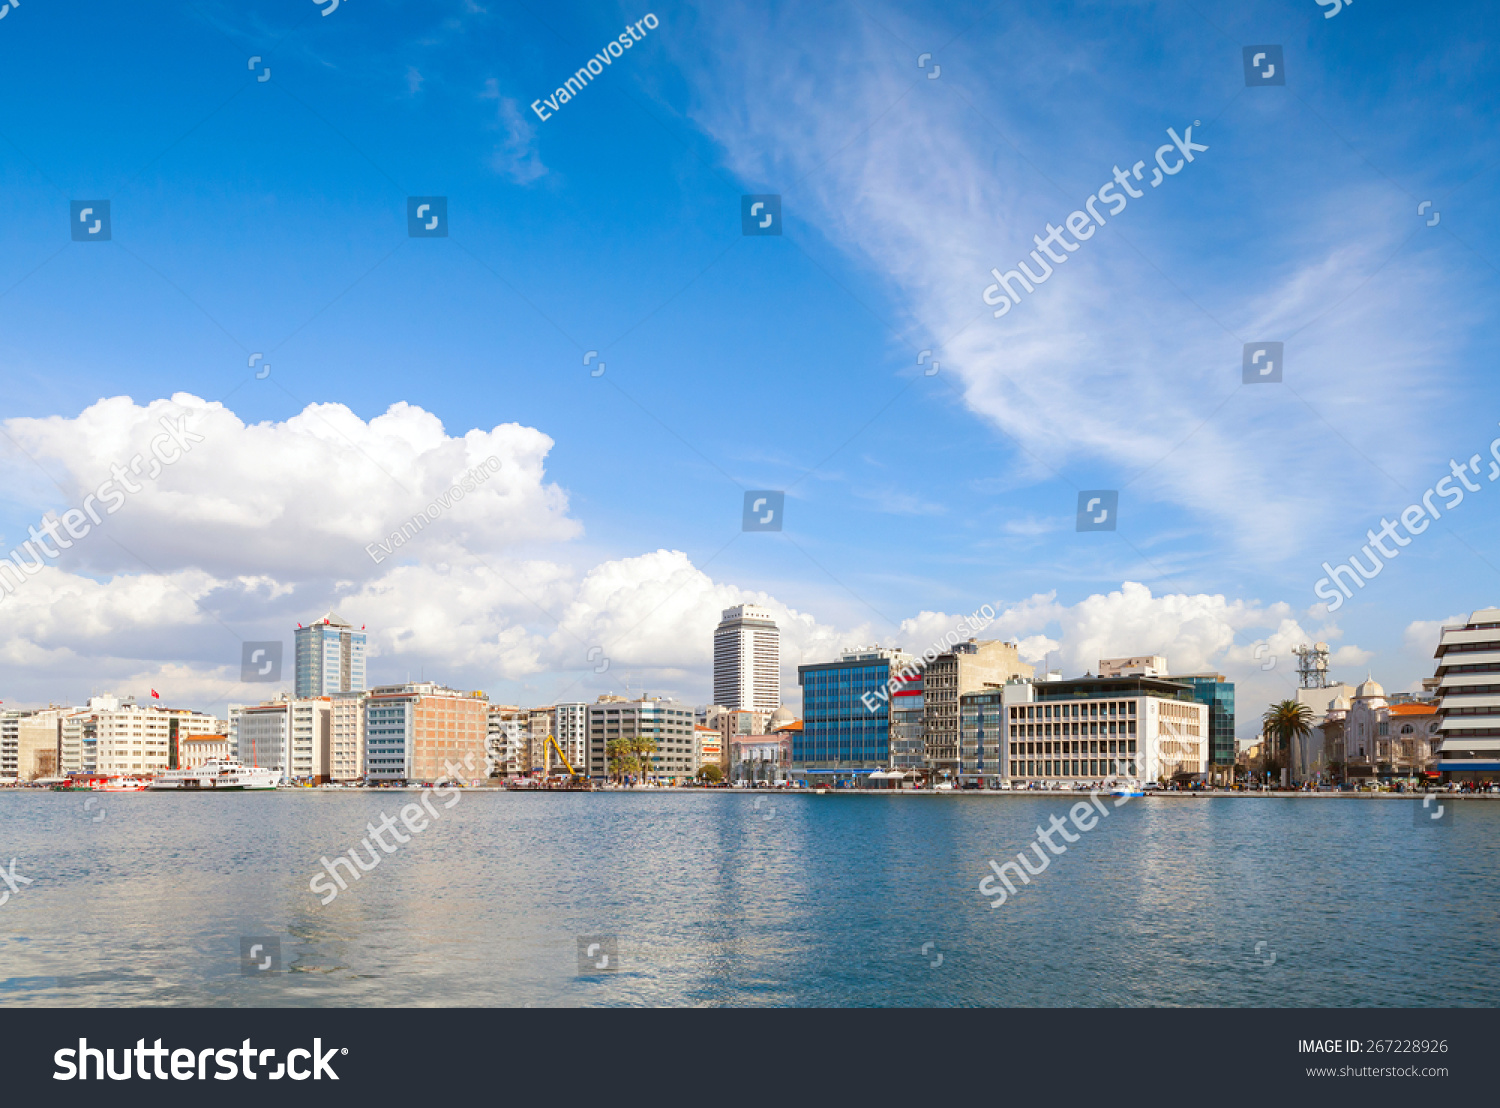 coastal cityscape with modern buildings under cloudy sky